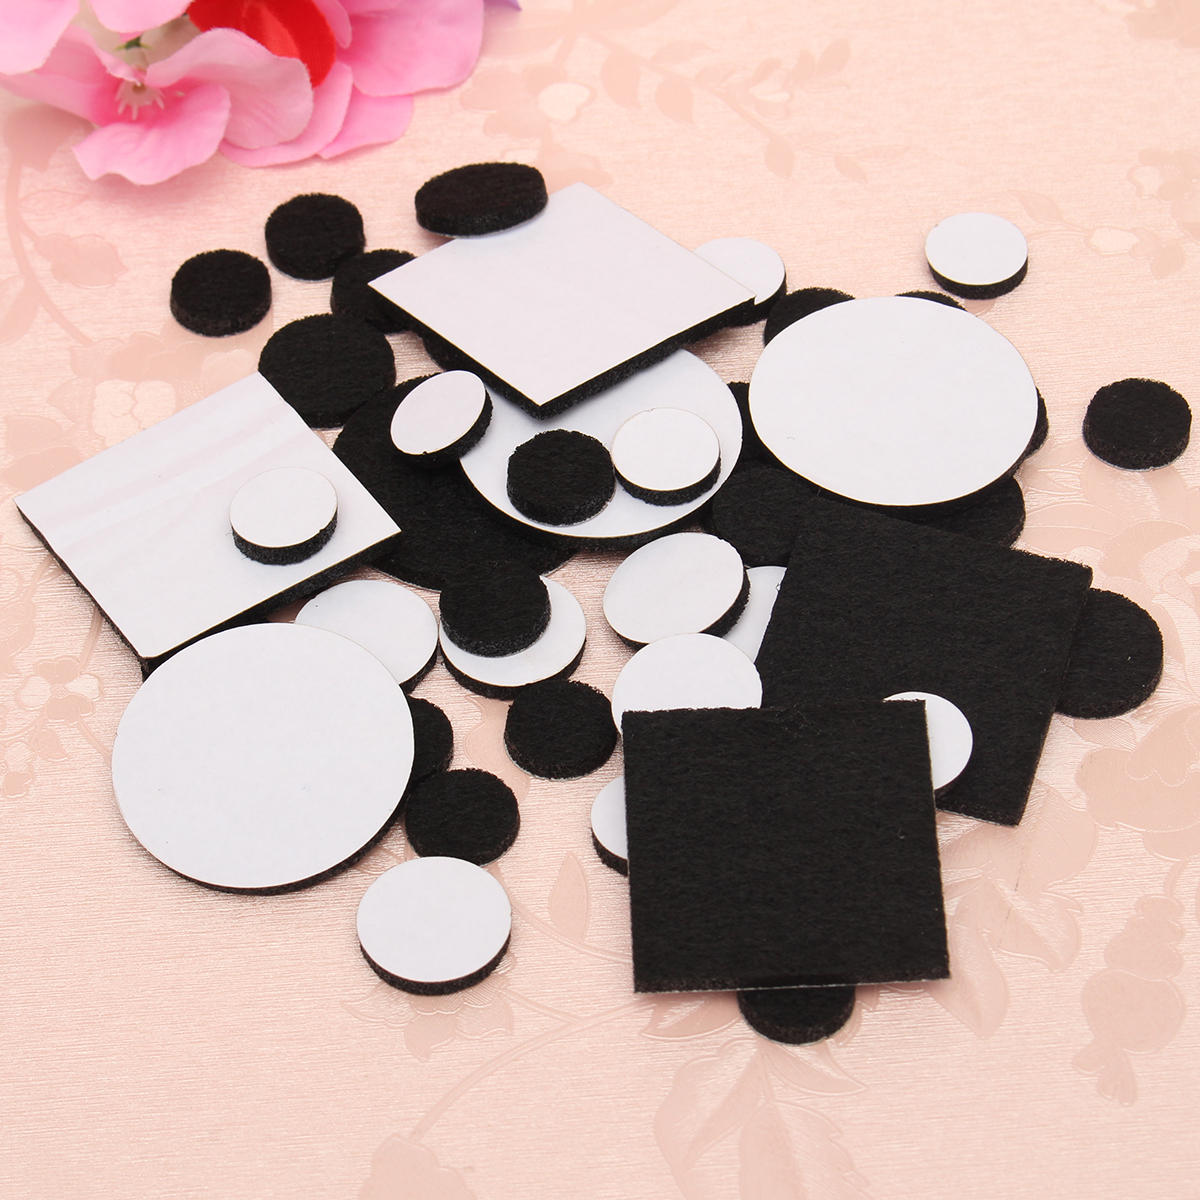 50pcs Floor Furniture Felt Pads Self Adhesive Sticky Protect Wood Chairs Scratch Banggood